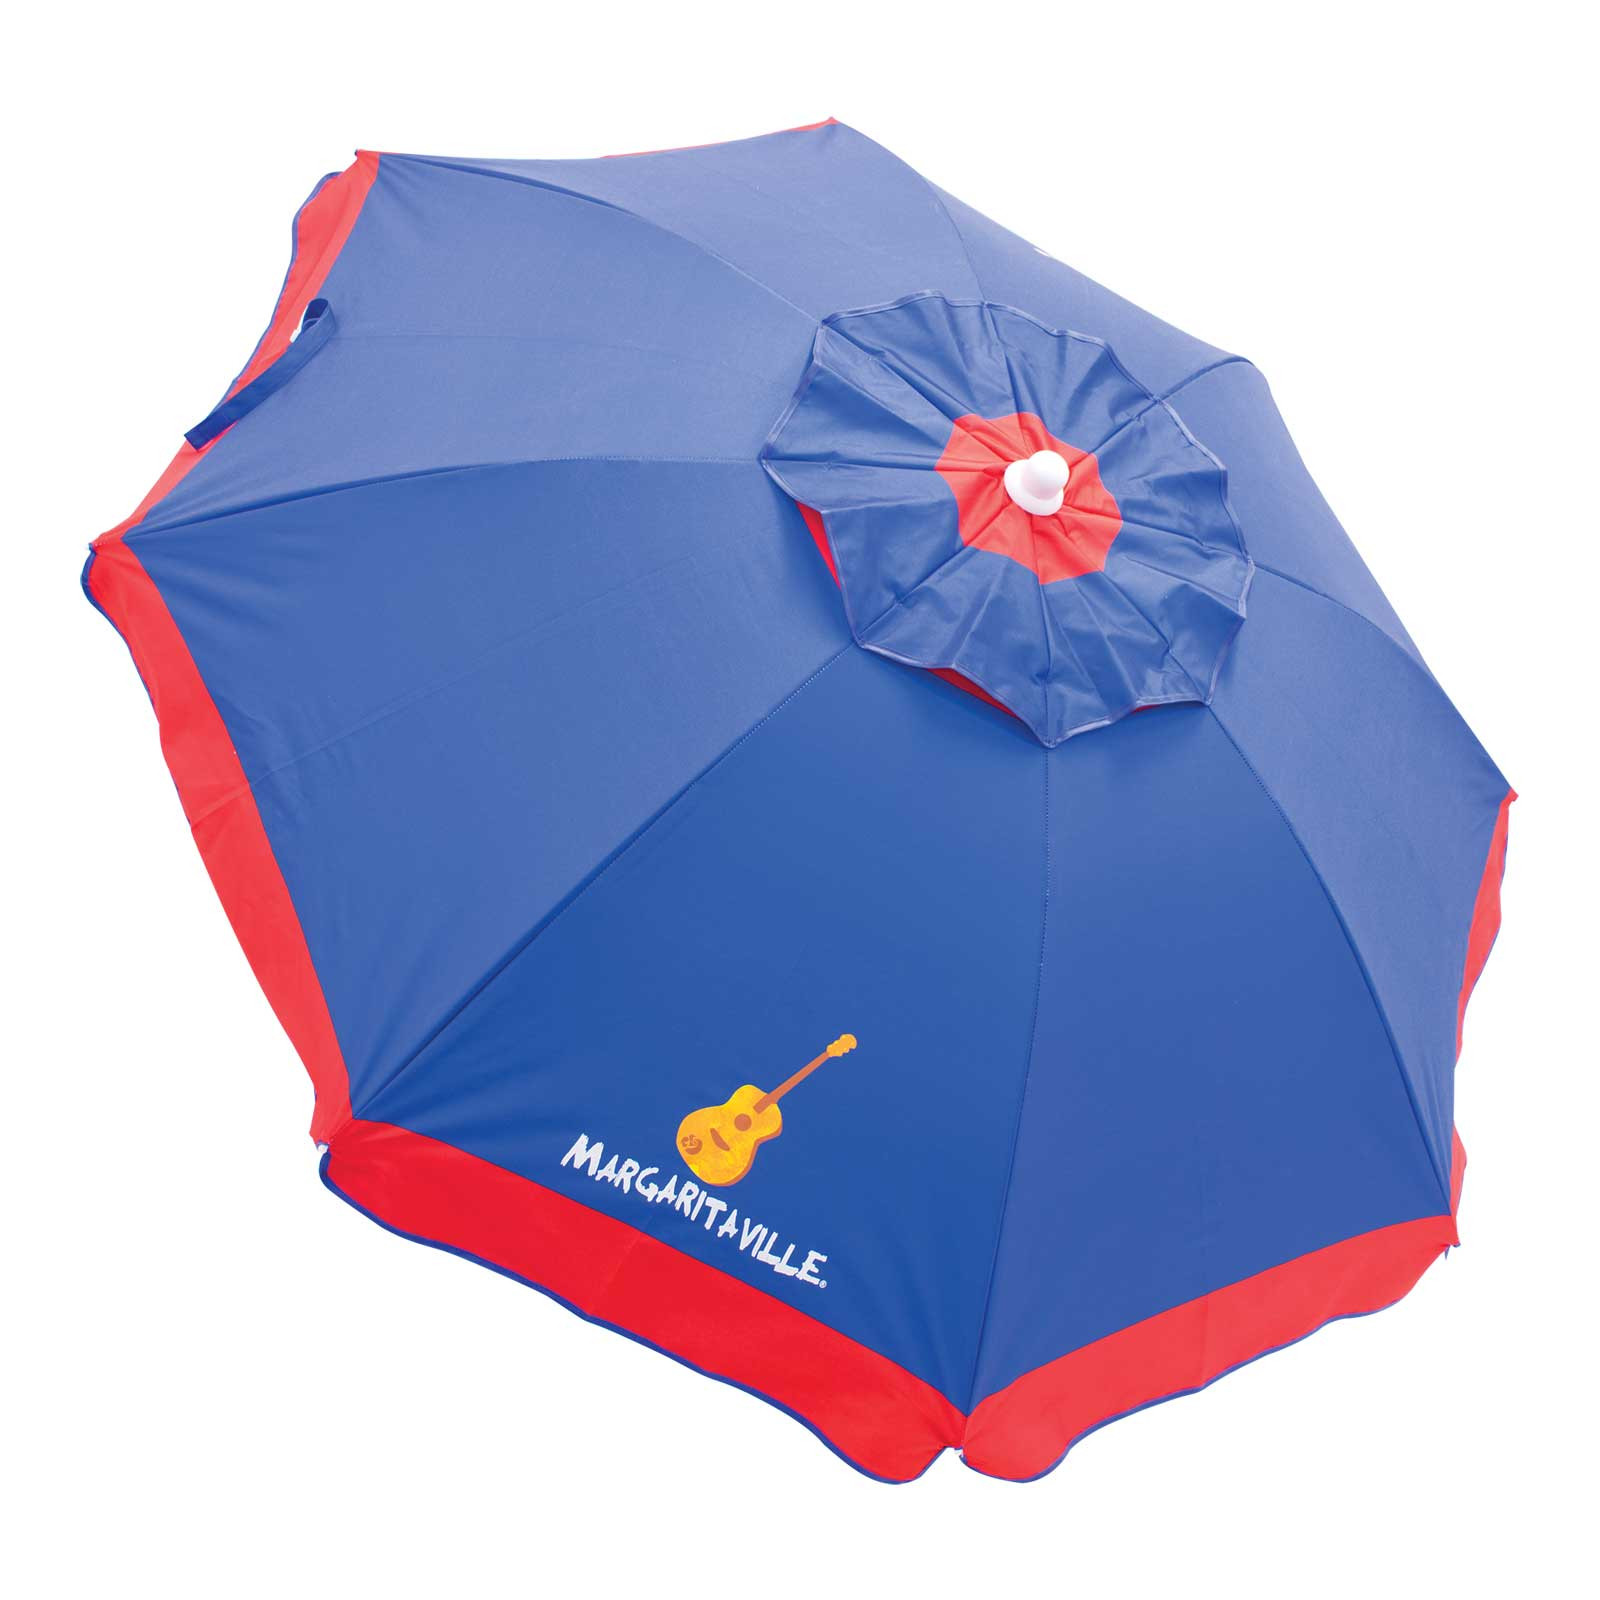 BLUE 6' BEACH UMBRELLA